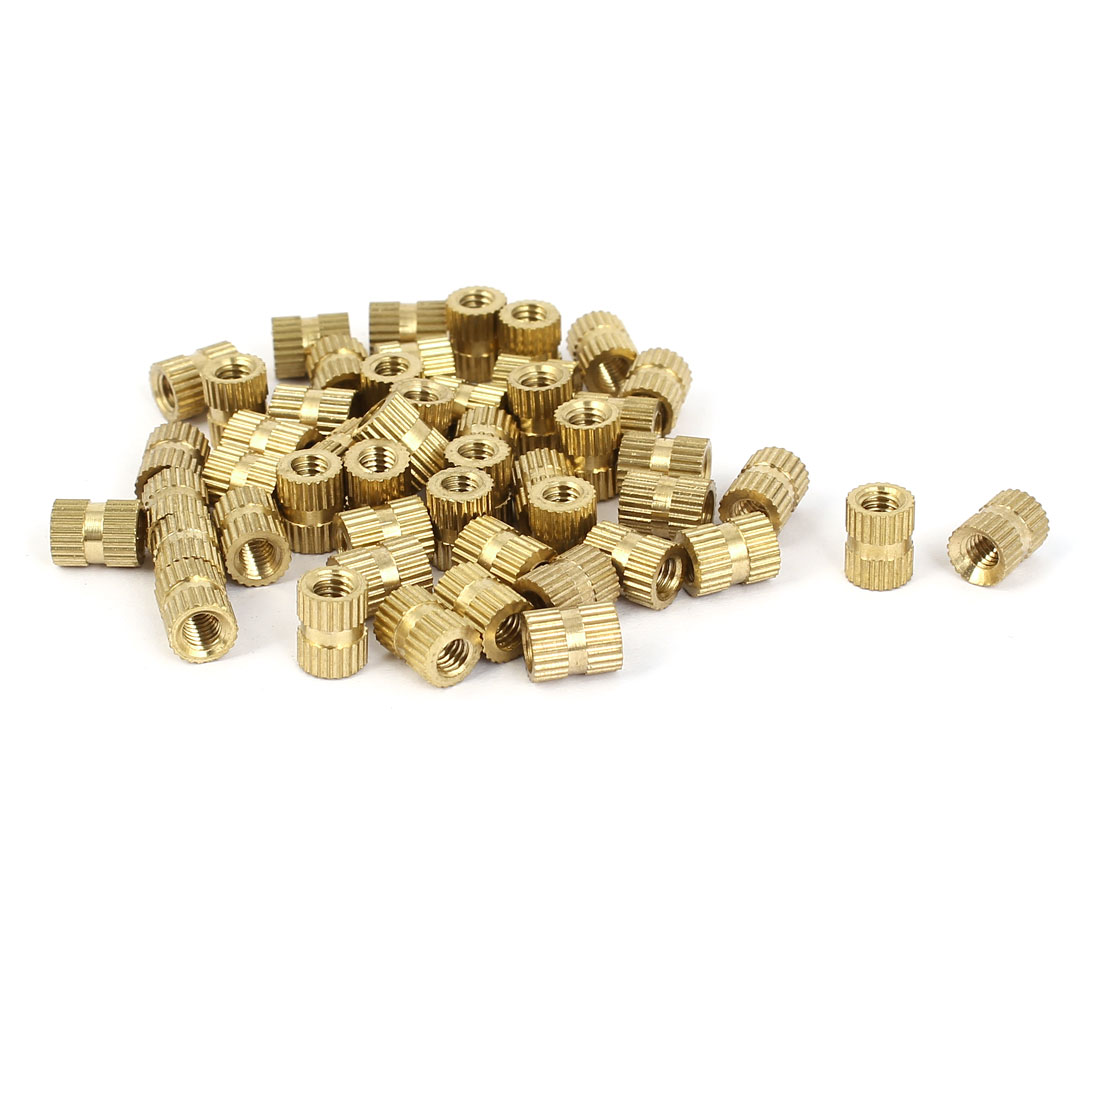 M4x8mm 6mm OD Brass Embedded Knurled Insert Thumb Nuts 50pcs